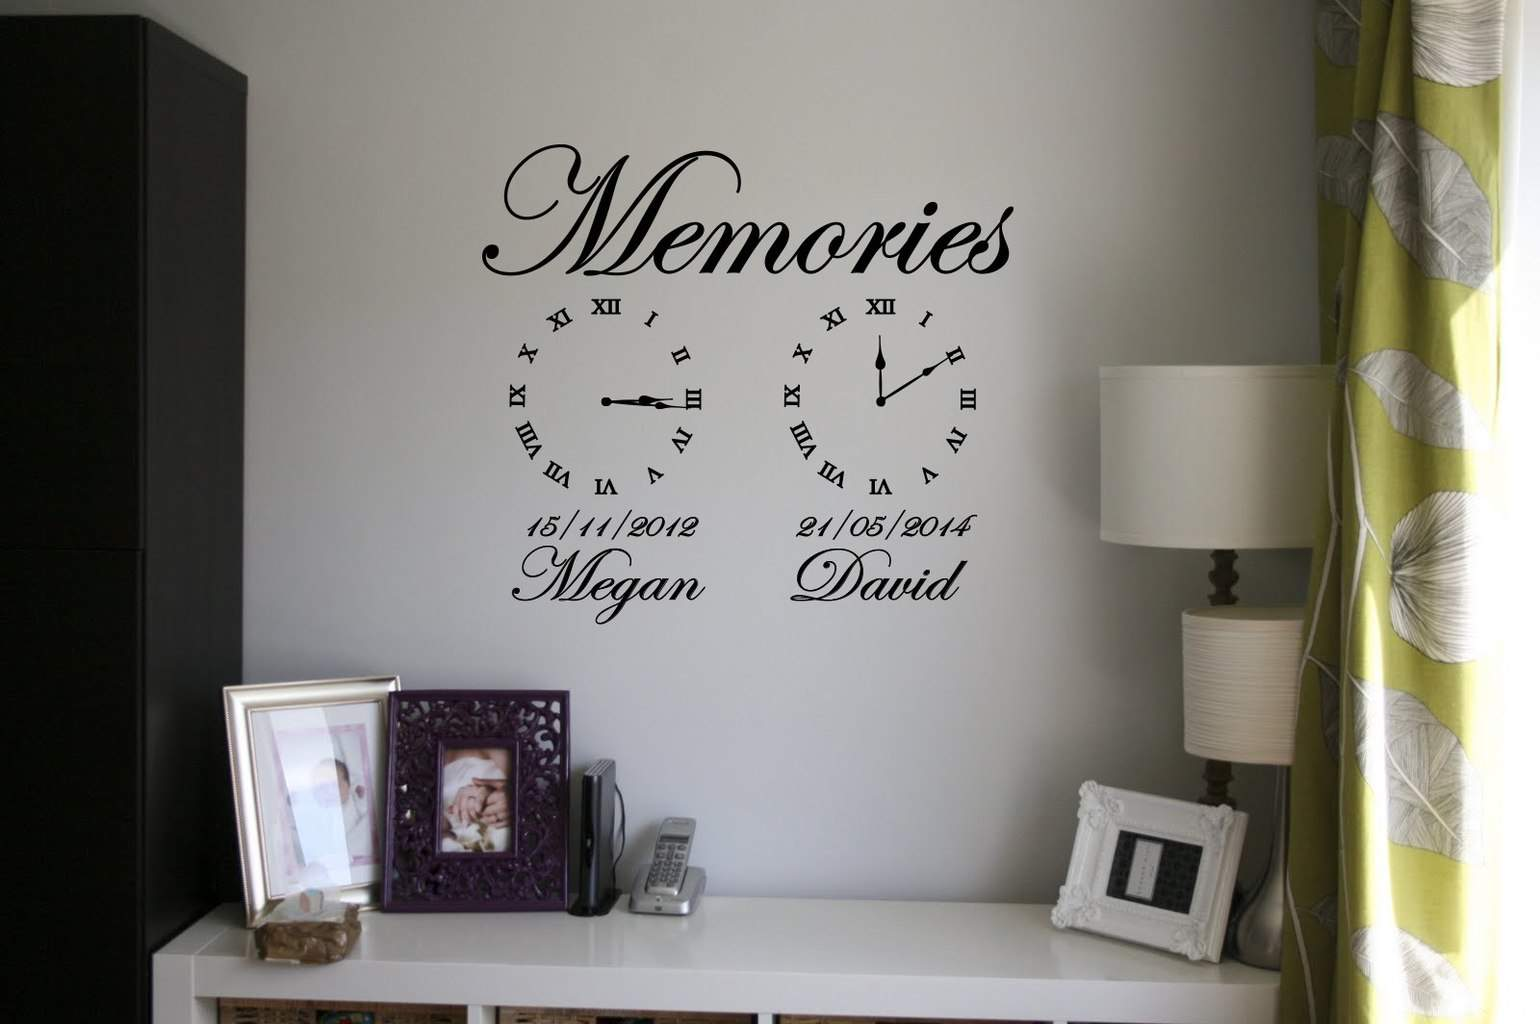 Fill Your Living Area With Living Room Memories!